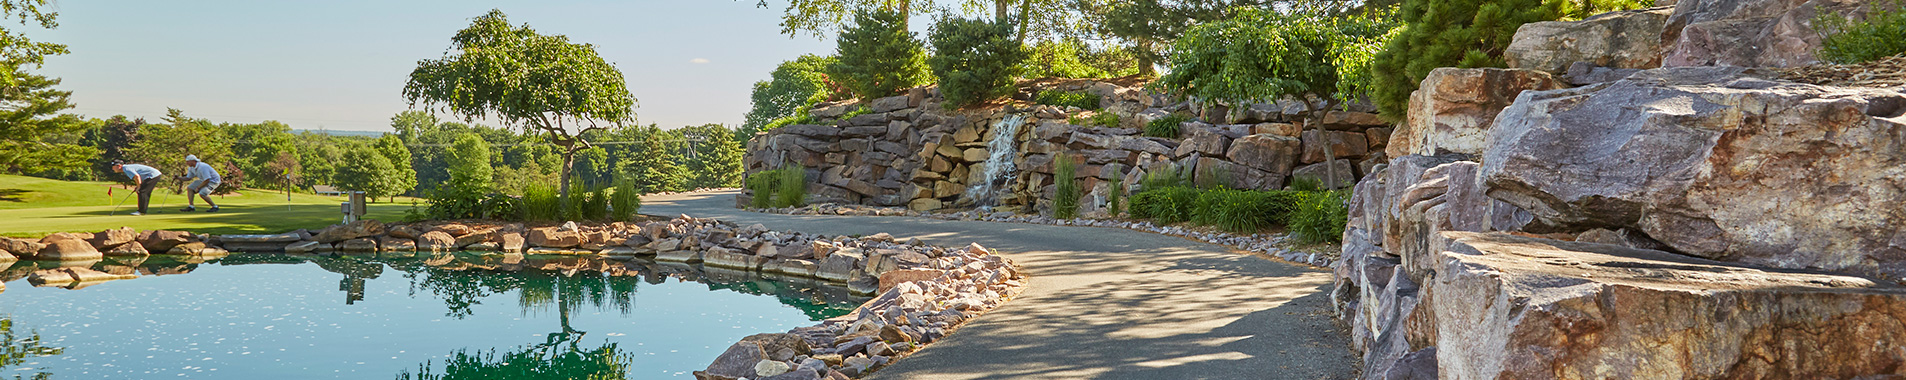 Landscaping Boulders Mn : Landscape rock pricing boulders decorative bryan mn